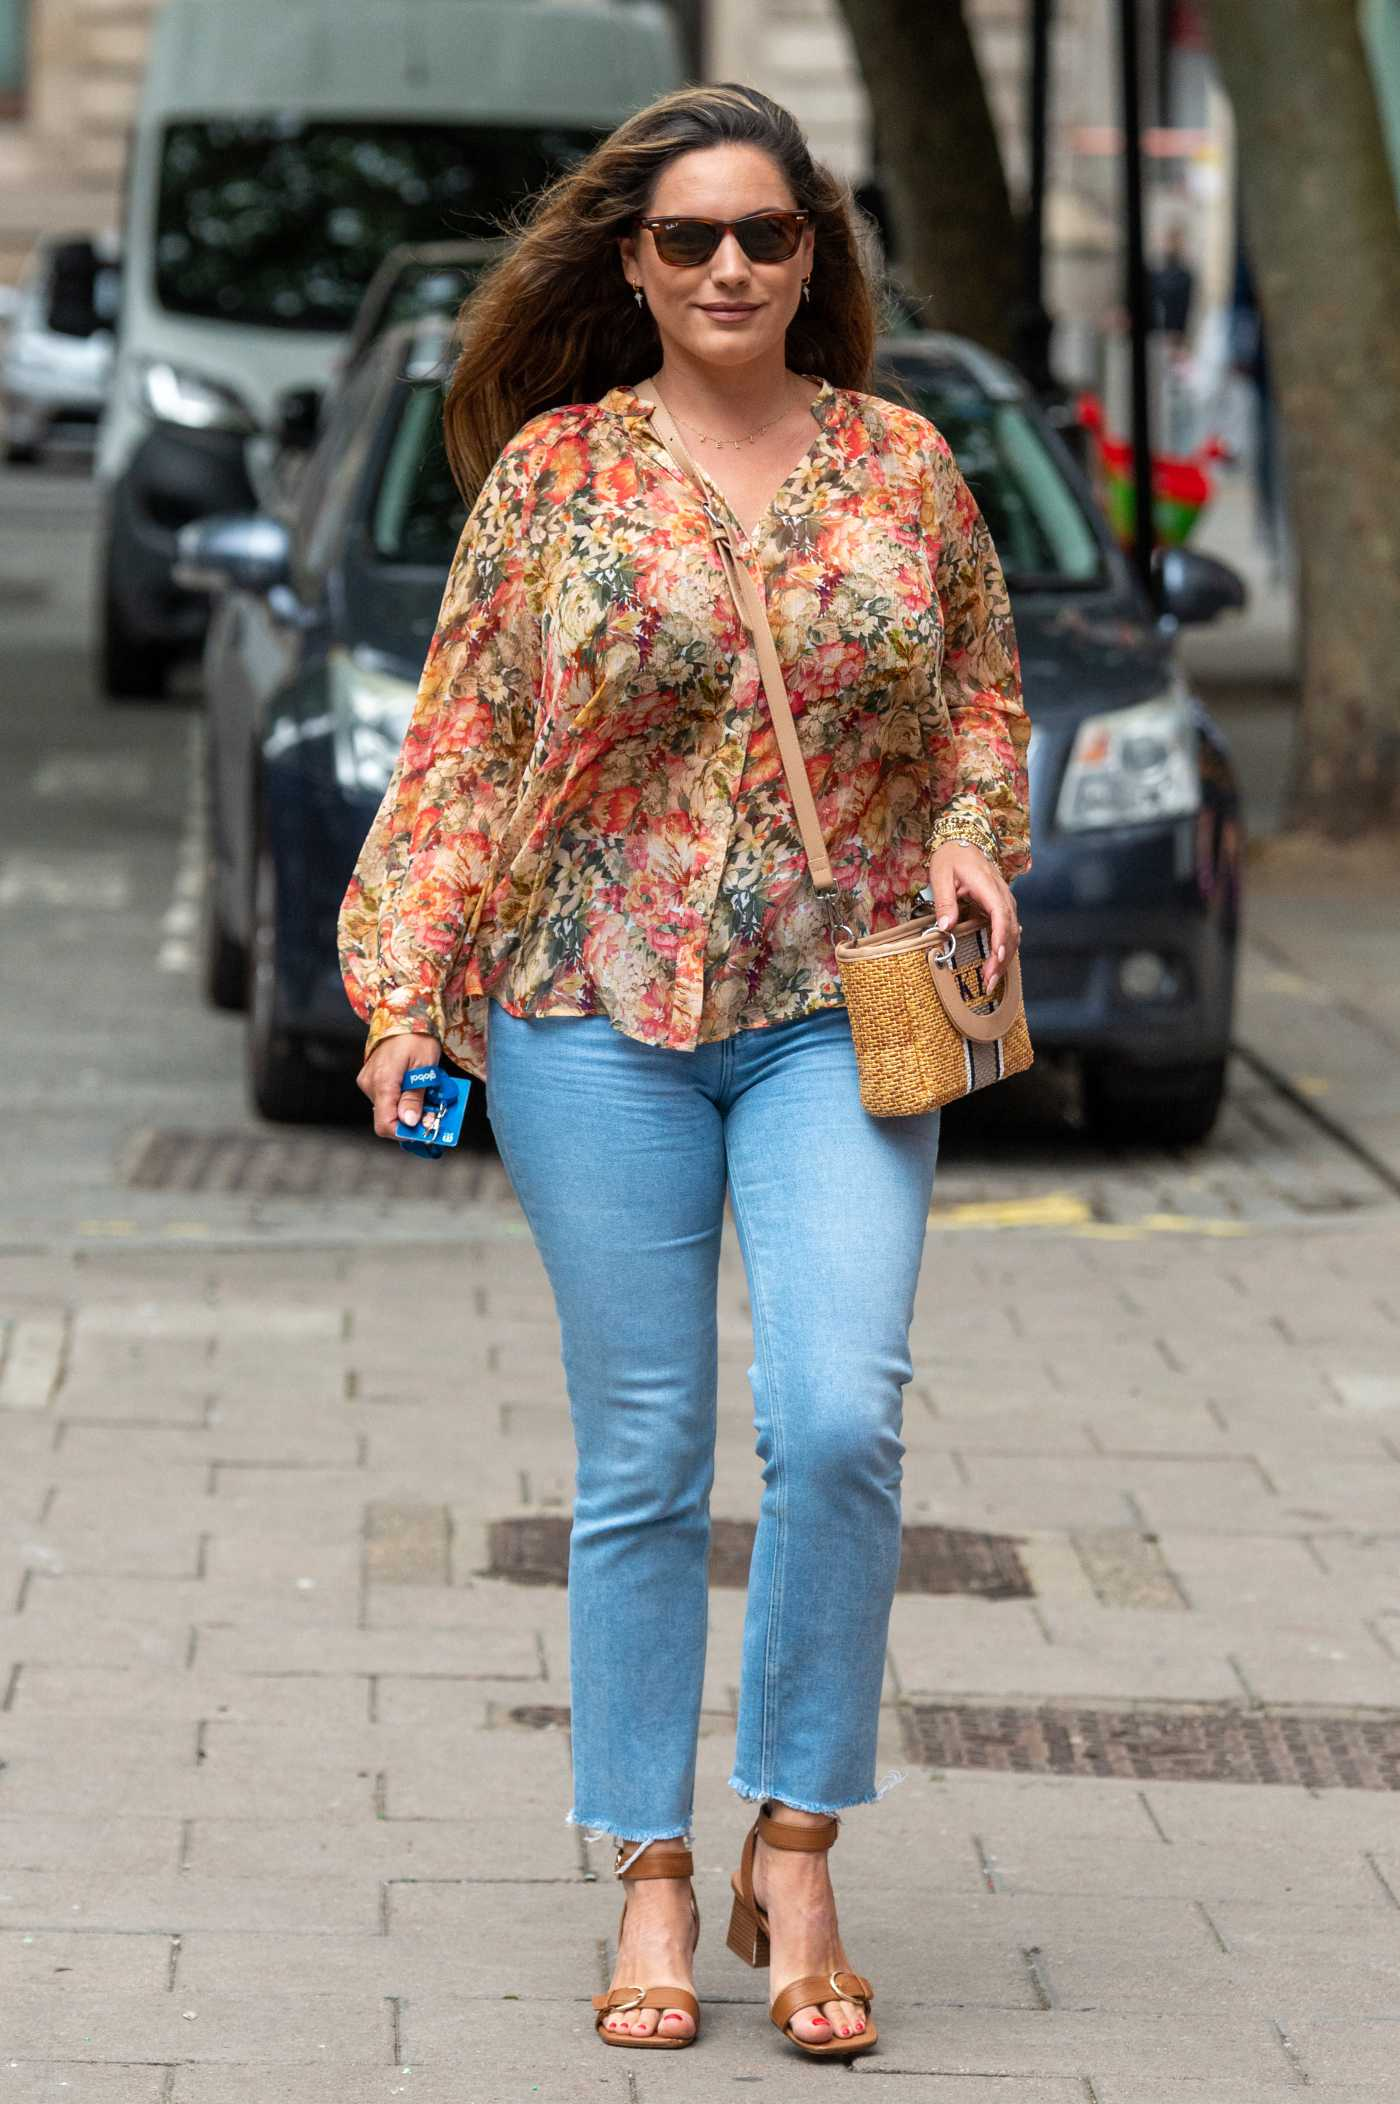 Kelly Brook in a Floral Blouse Arrives at the Global Studios in London 07/12/2021